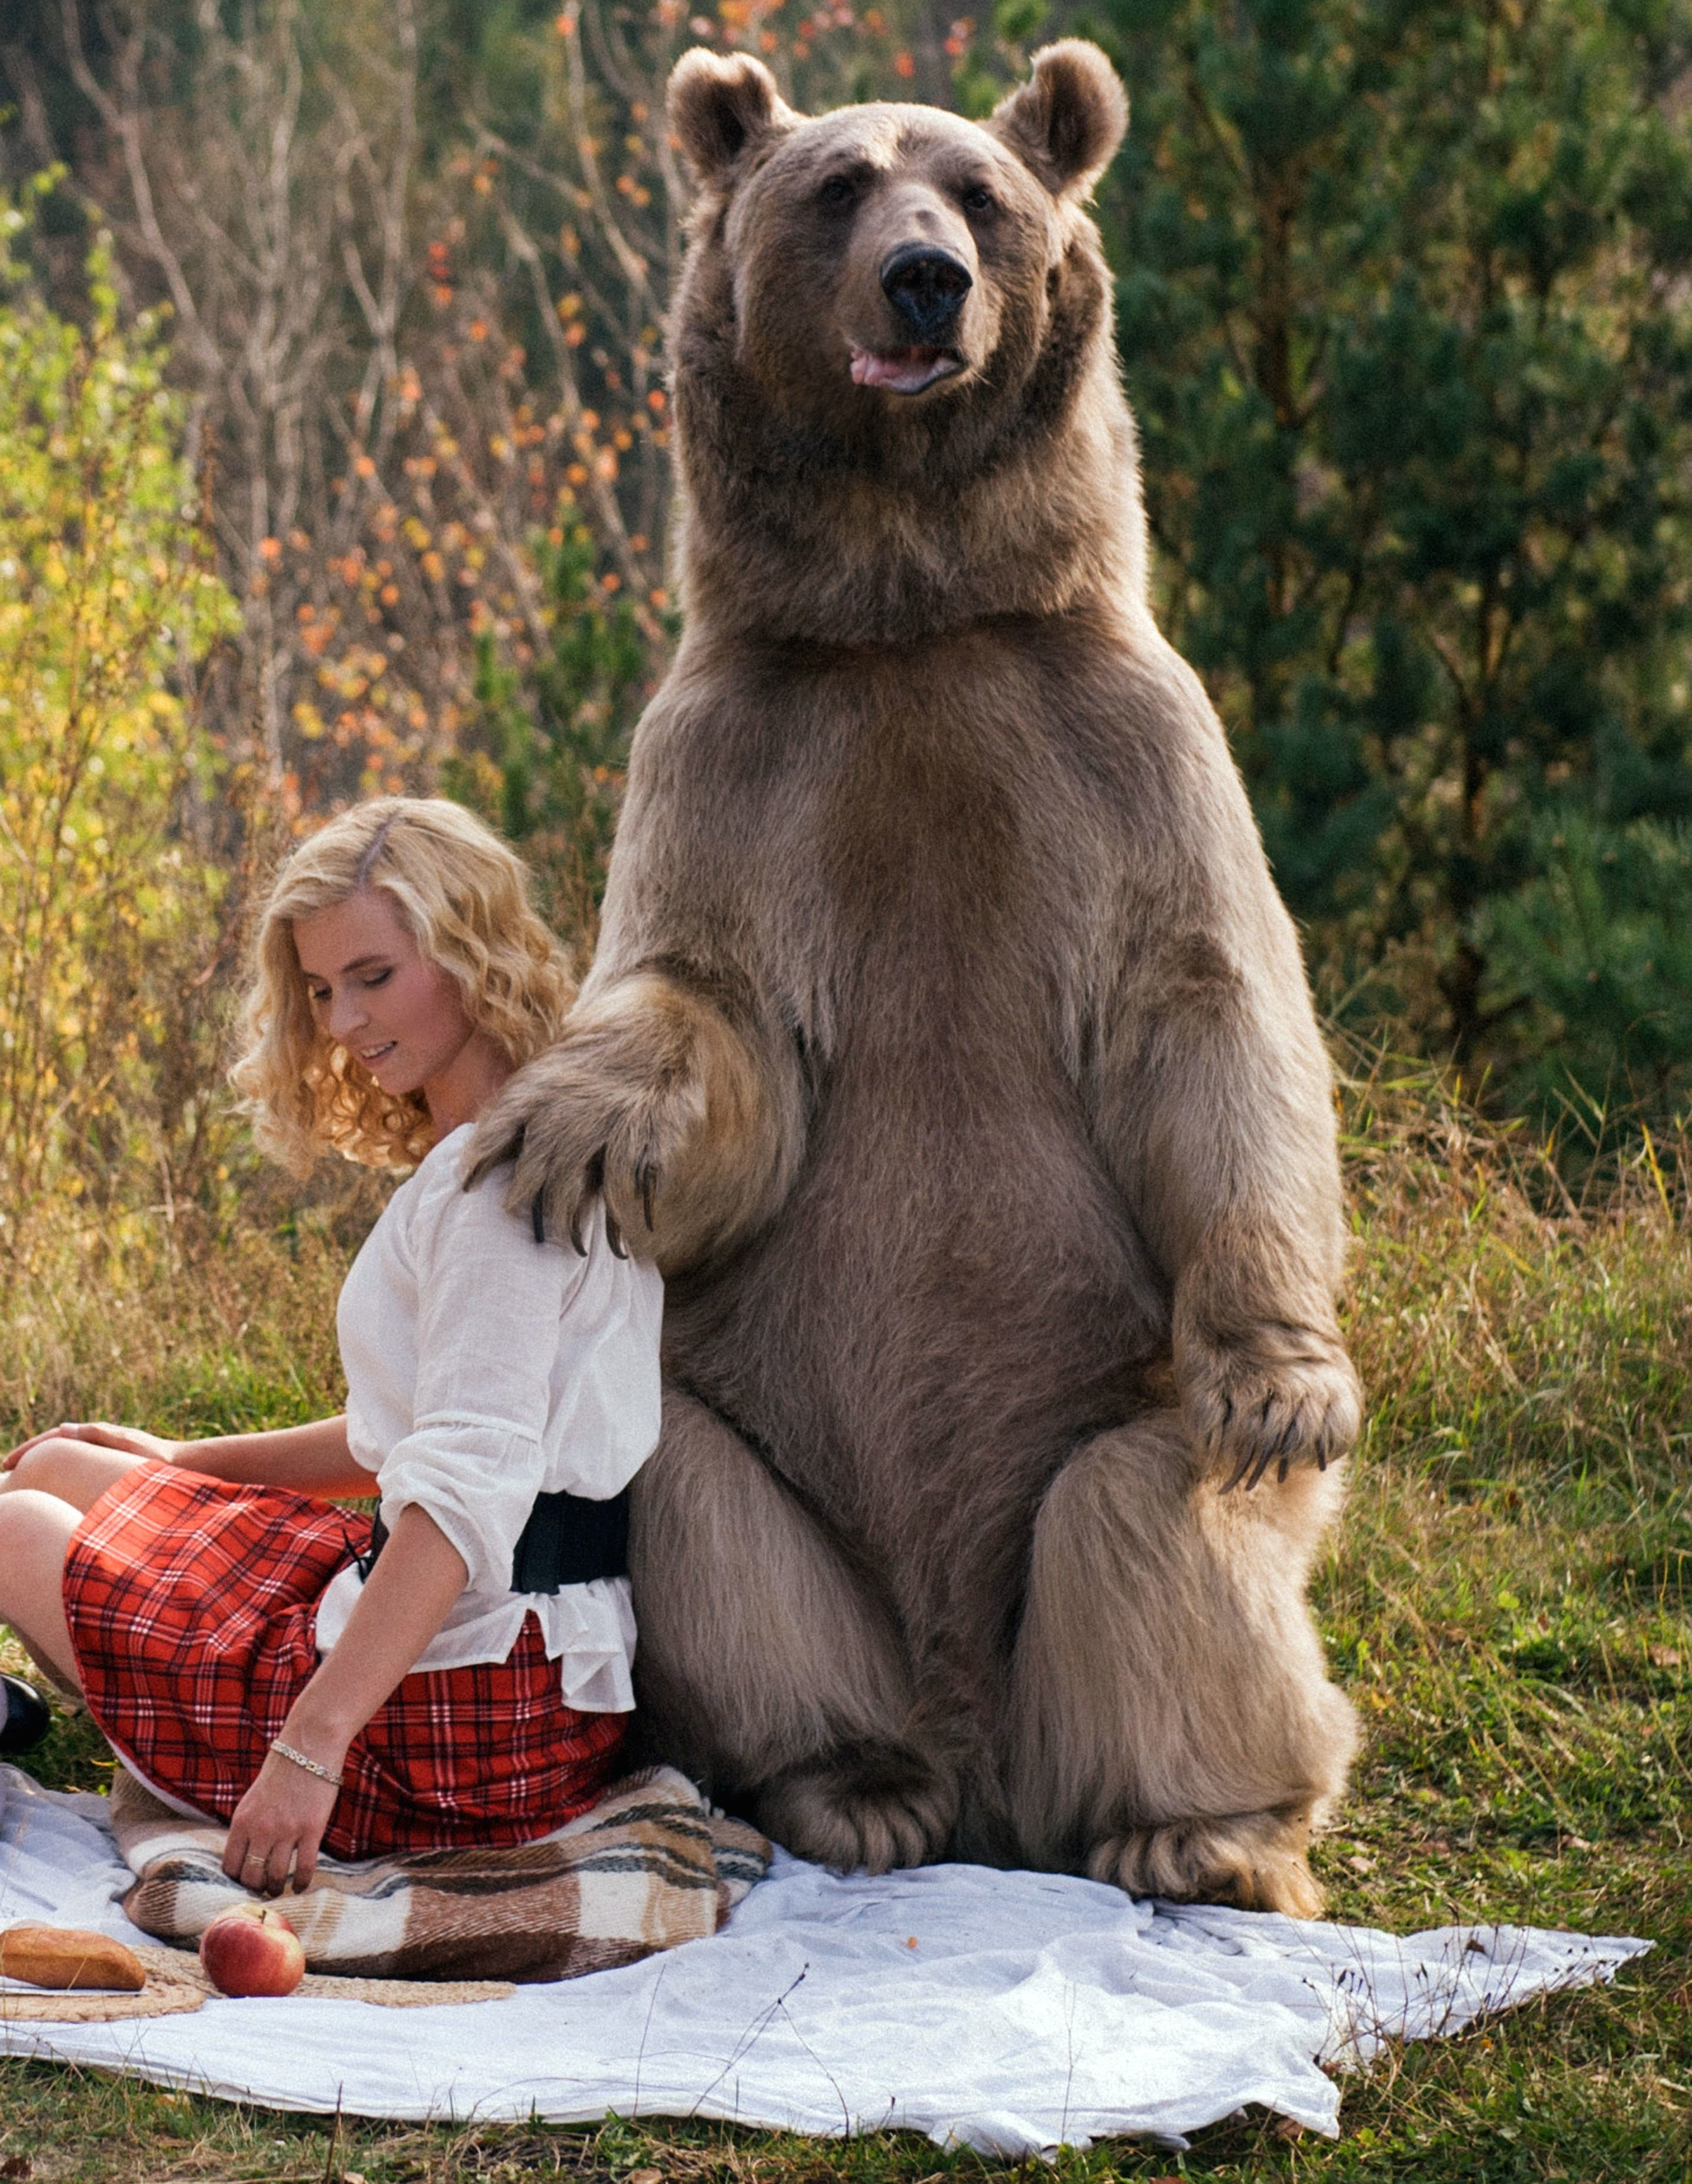 Grizzly bear named Stepan looks intimidating posing next to model Irina.